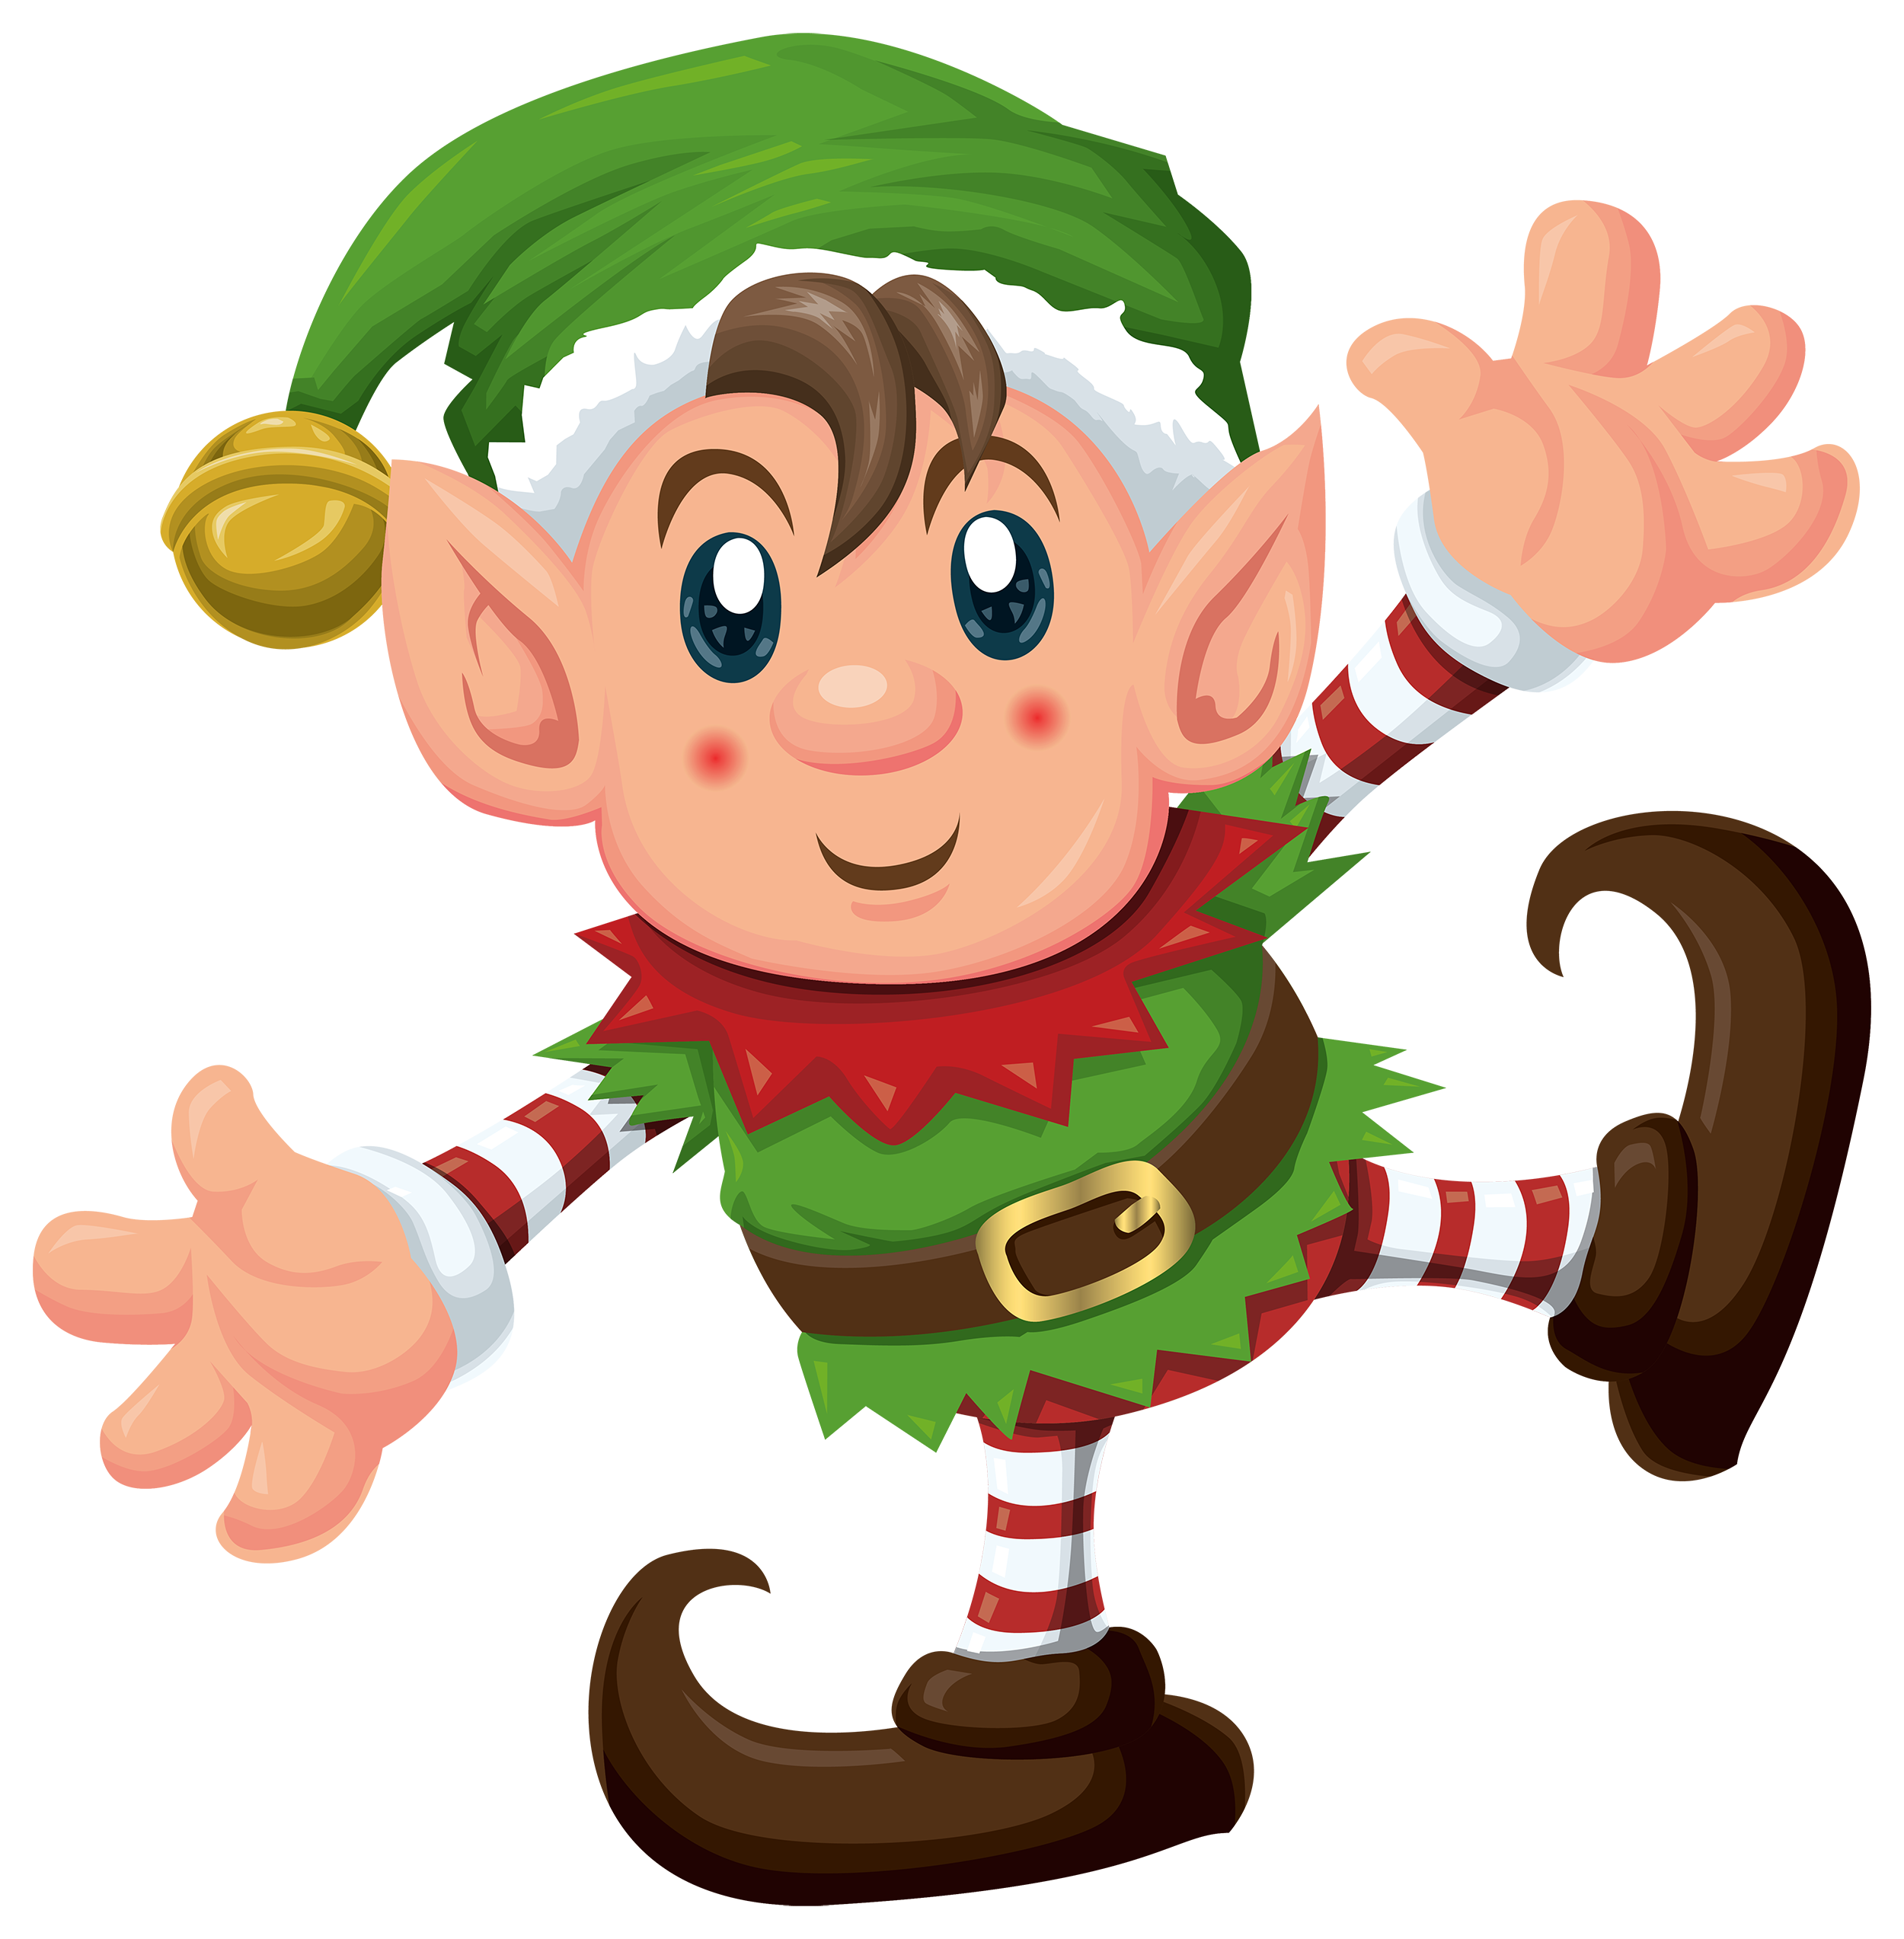 Elf clipart thing. Crossword for printable to